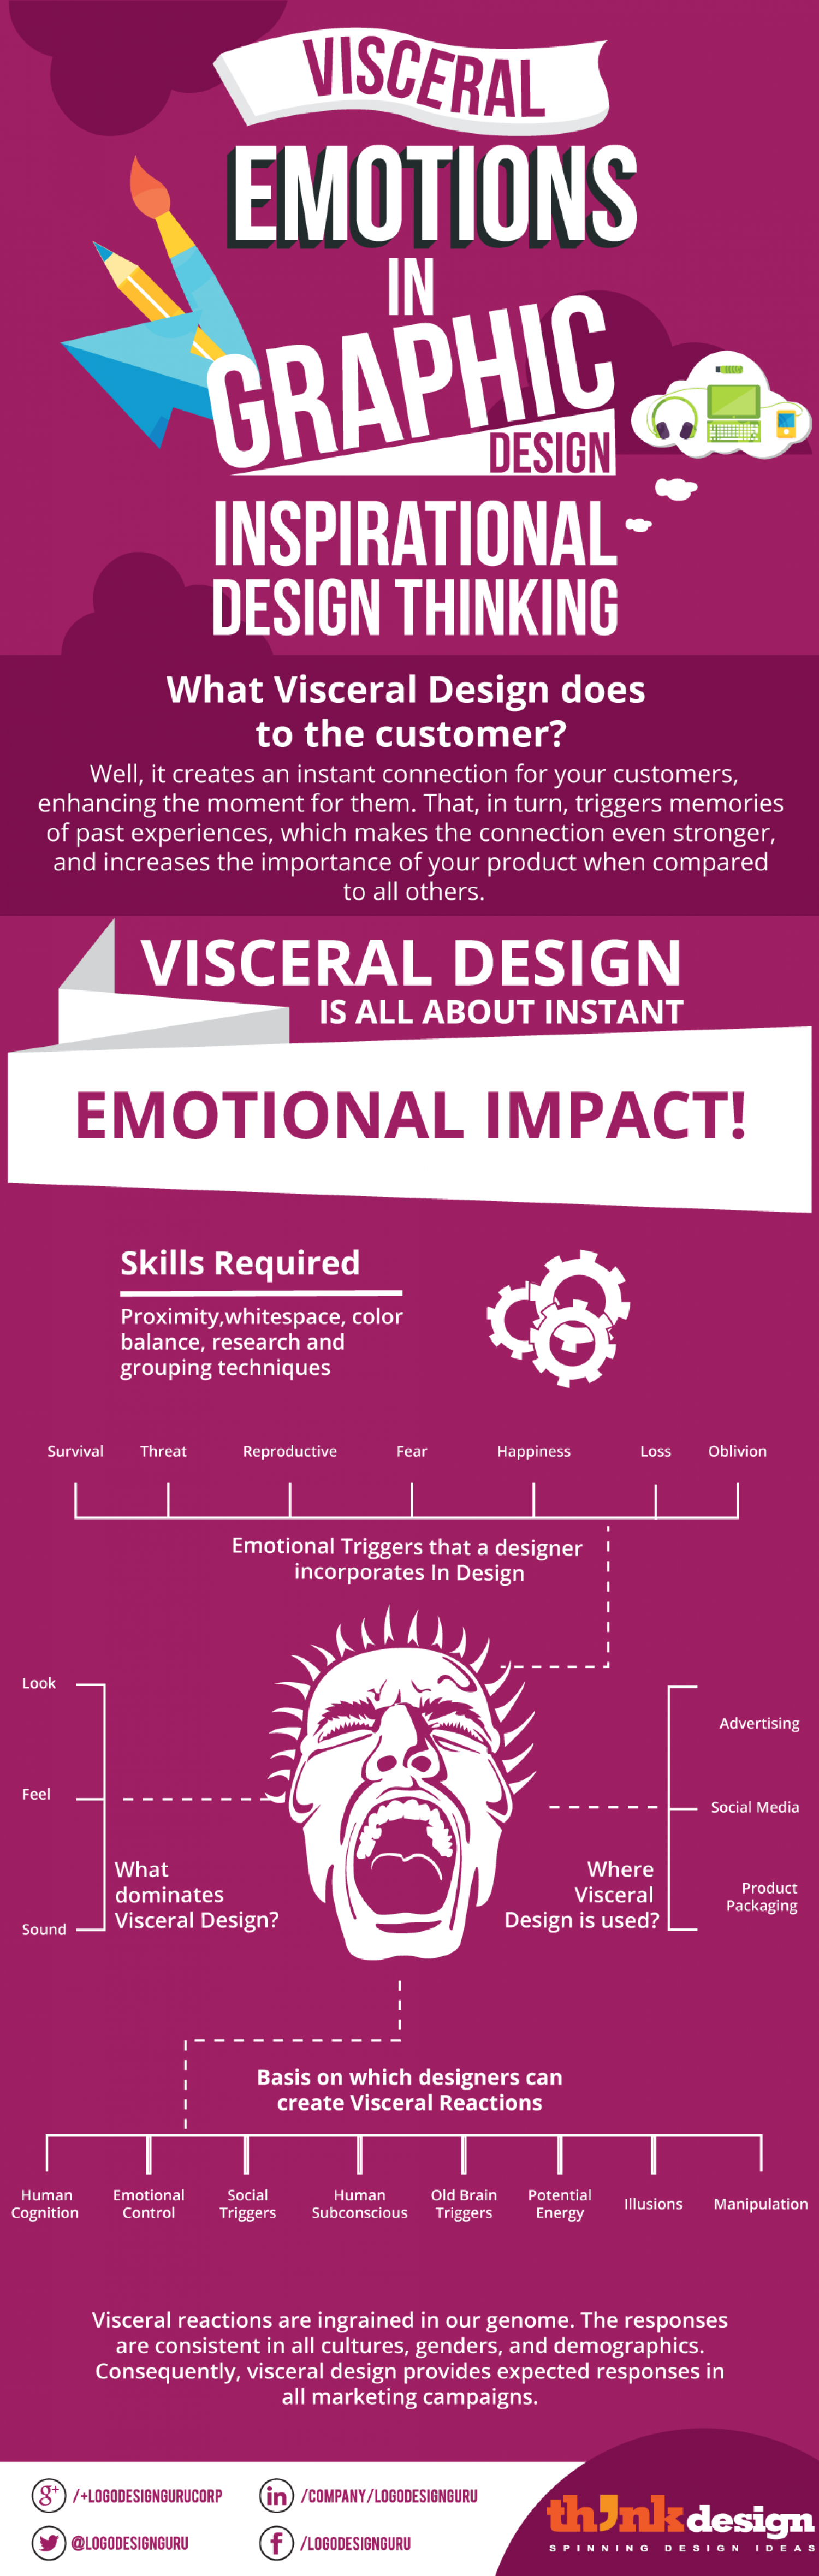 Visceral Emotions in Graphic Design: Inspirational Design Thinking  Infographic